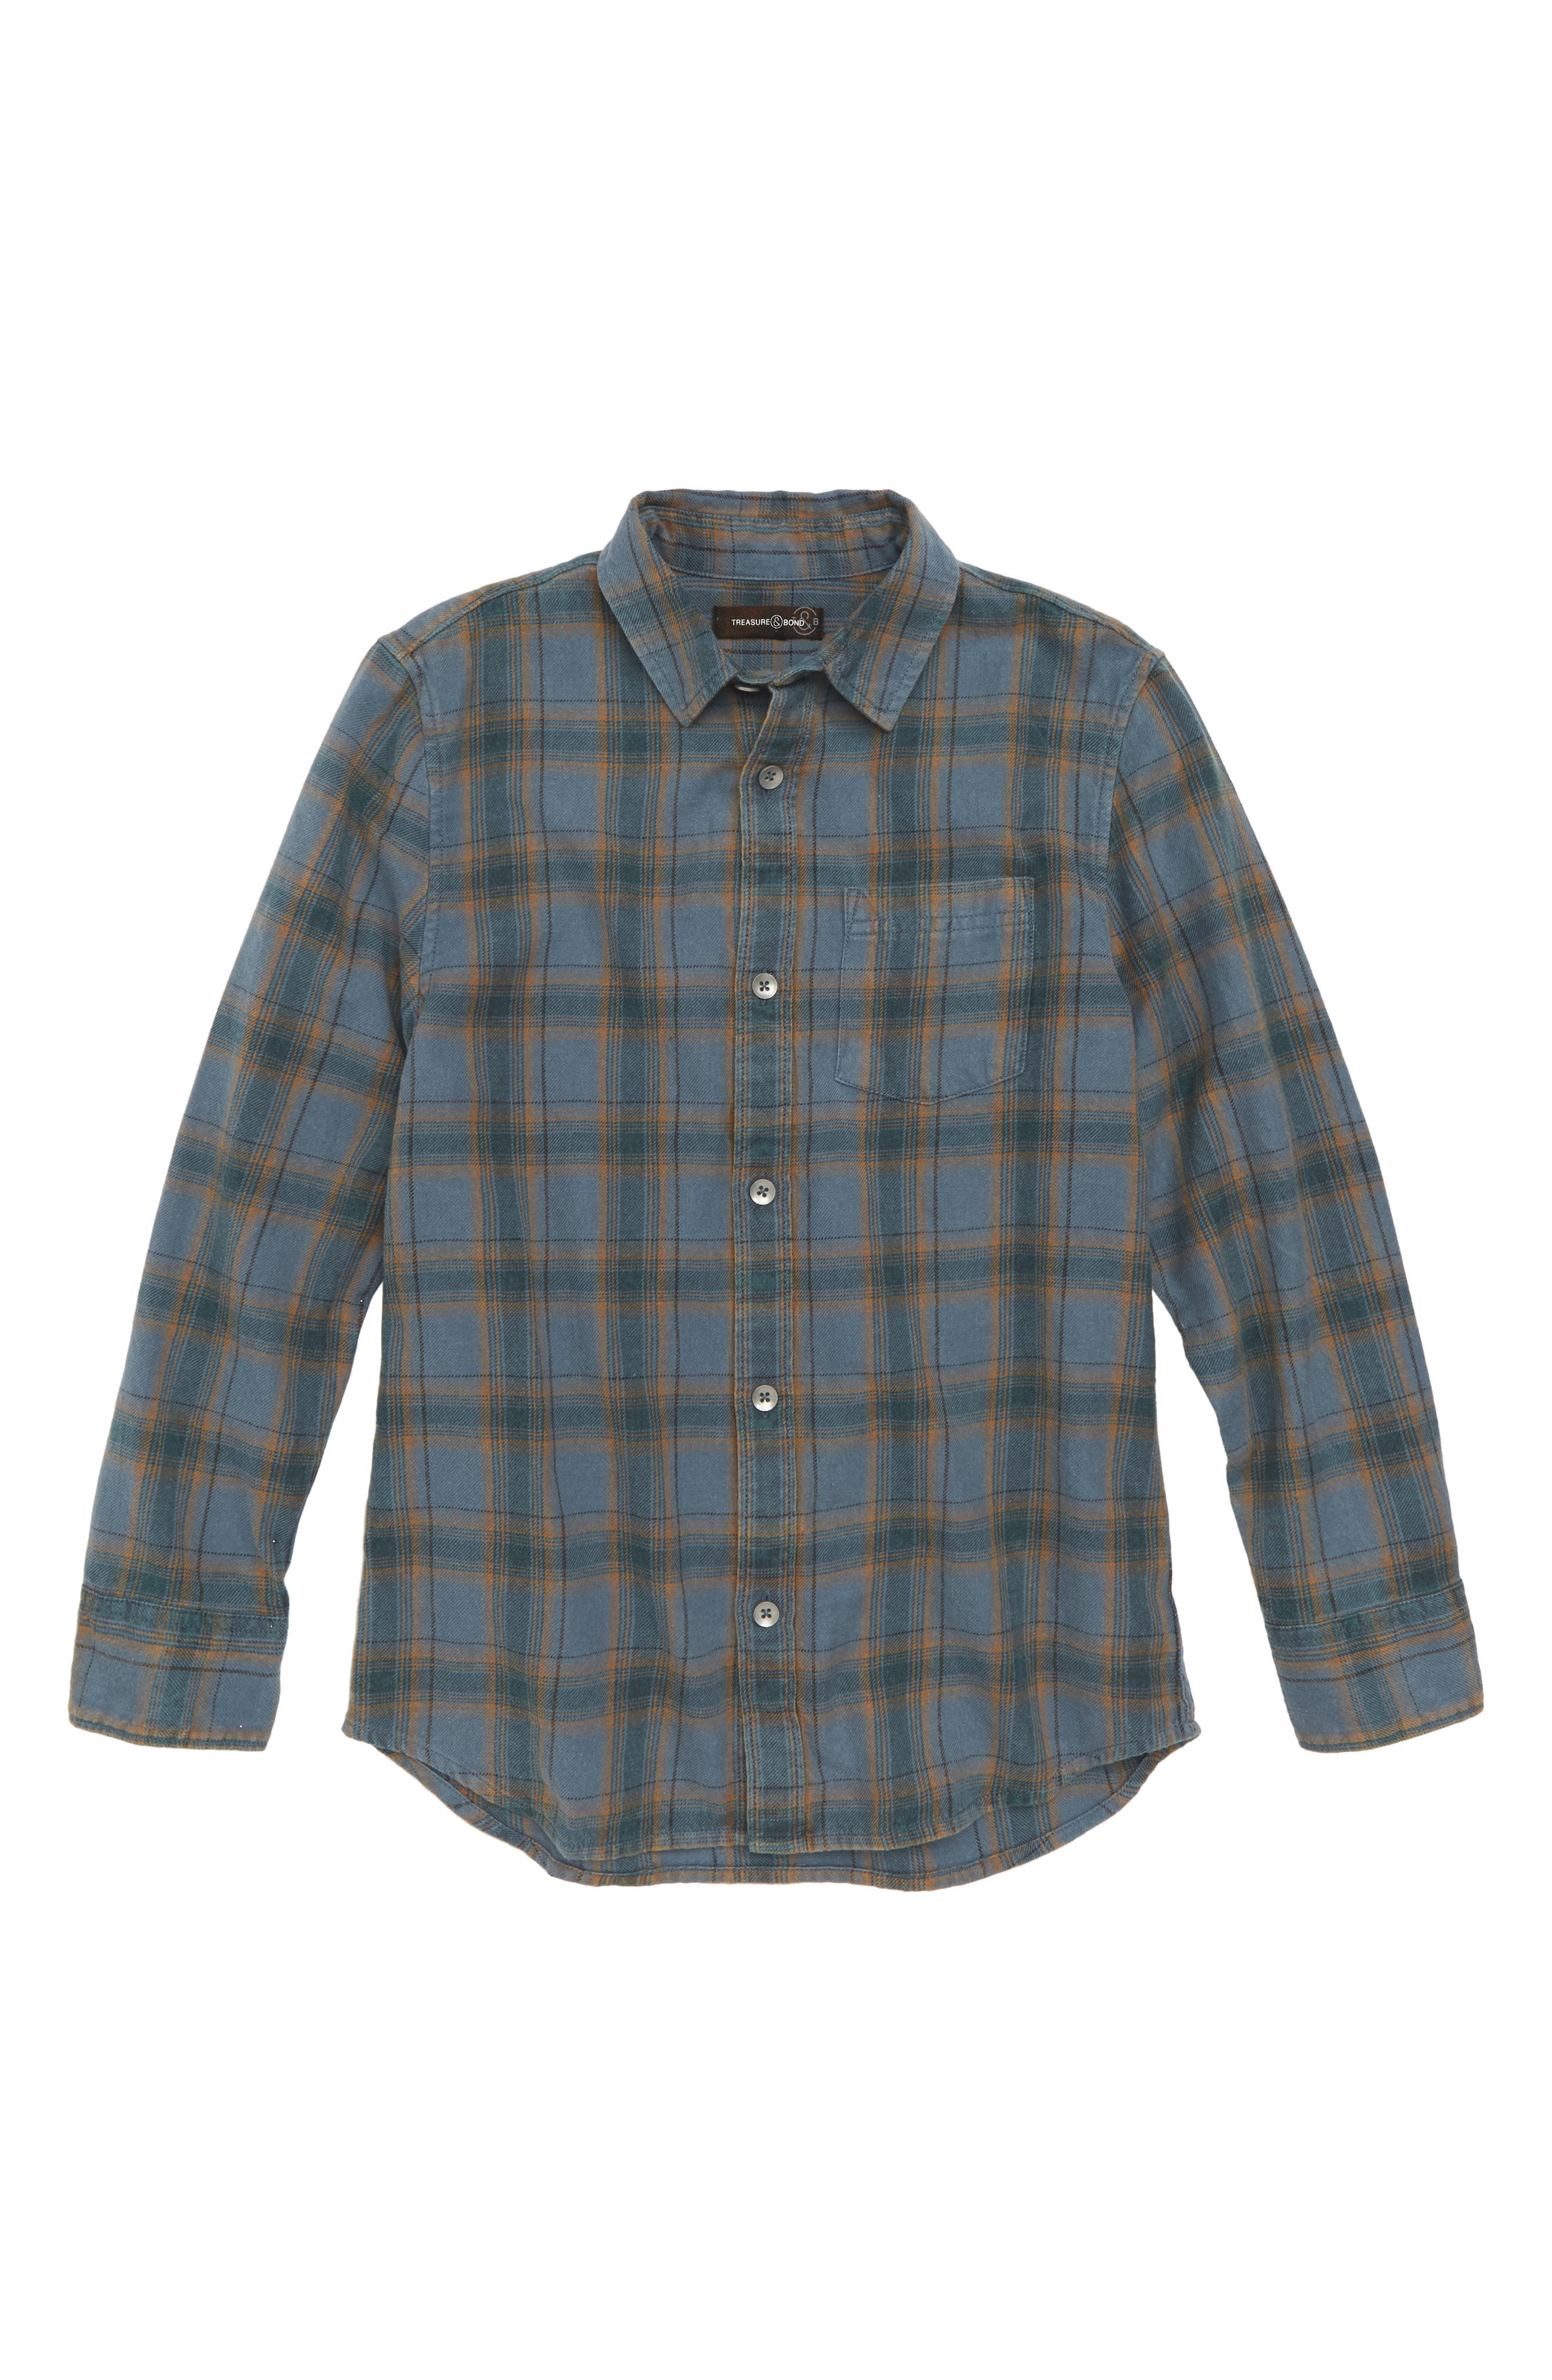 Washed Out Flannel Shirt,                             Main thumbnail 1, color,                             Blue Chinoise- Brown Plaid